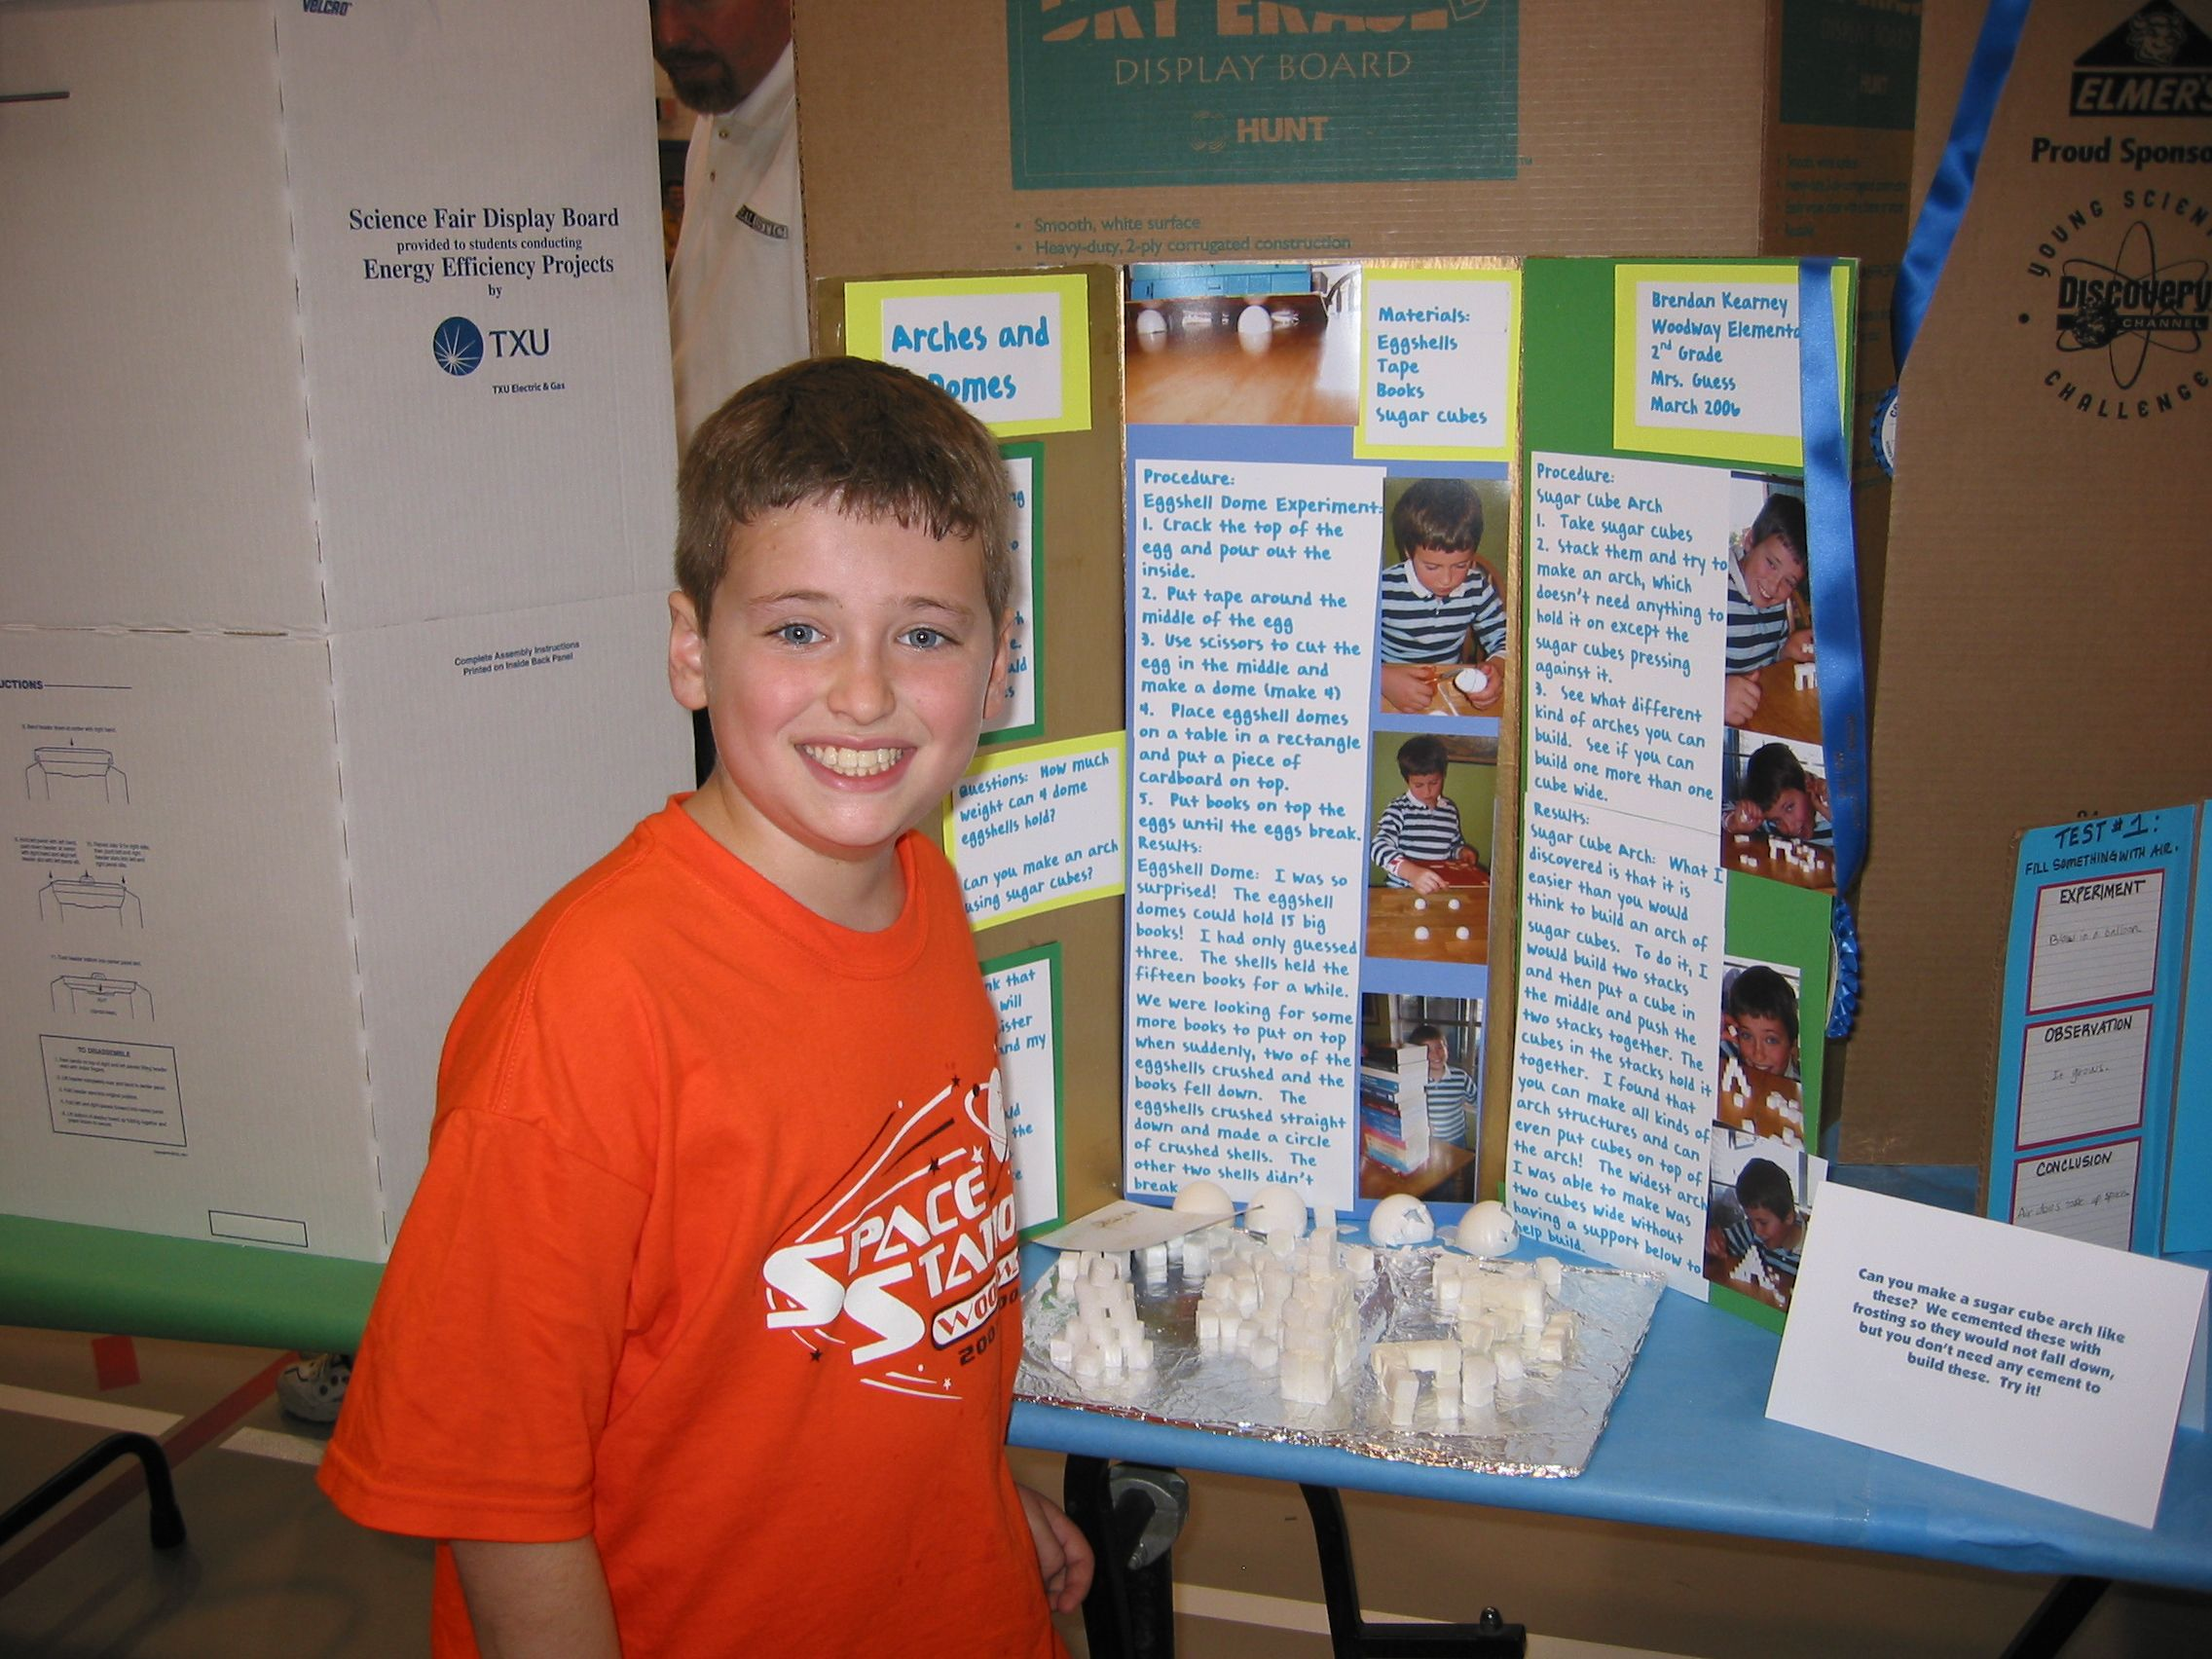 Easy Engineering Science Fair Project Science Fair Science Fair